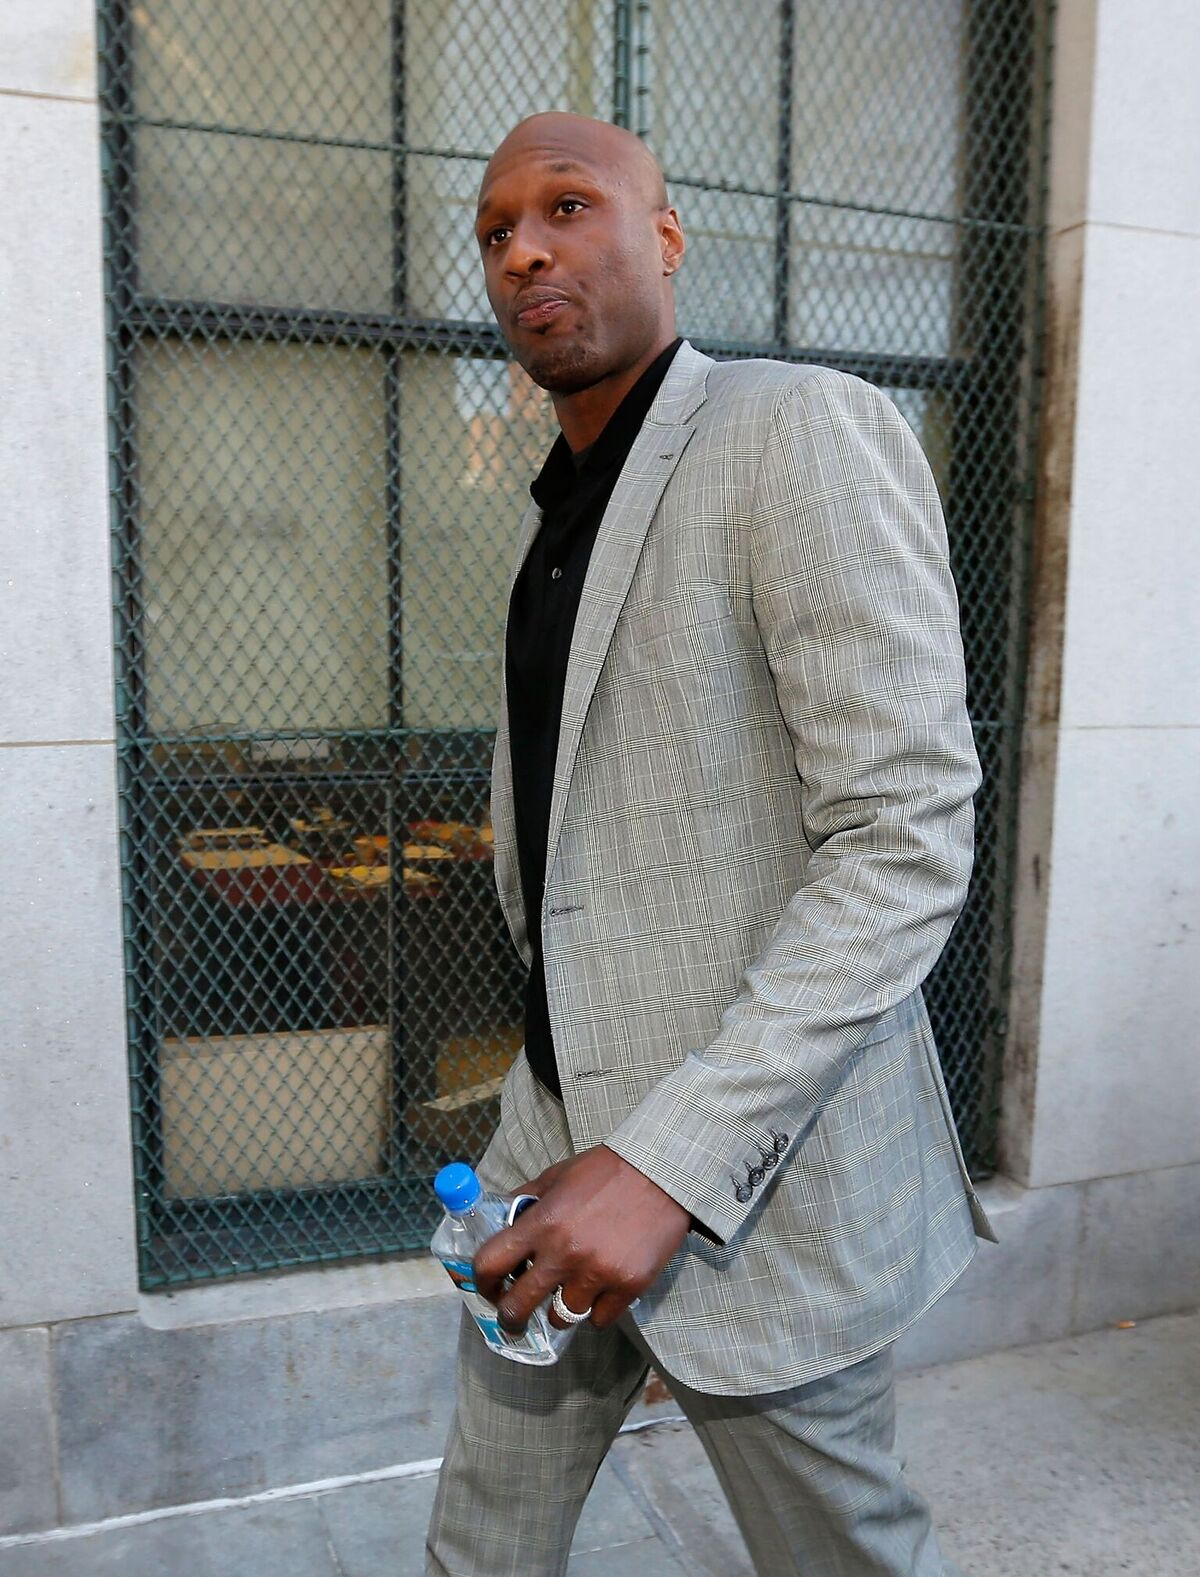 Lamar Odom arrives to attend a custody hearing with ex-girlfriend Liza Morales at New York State Supreme Court on March 5, 2013 in New York Cityv| Photo: Getty Images